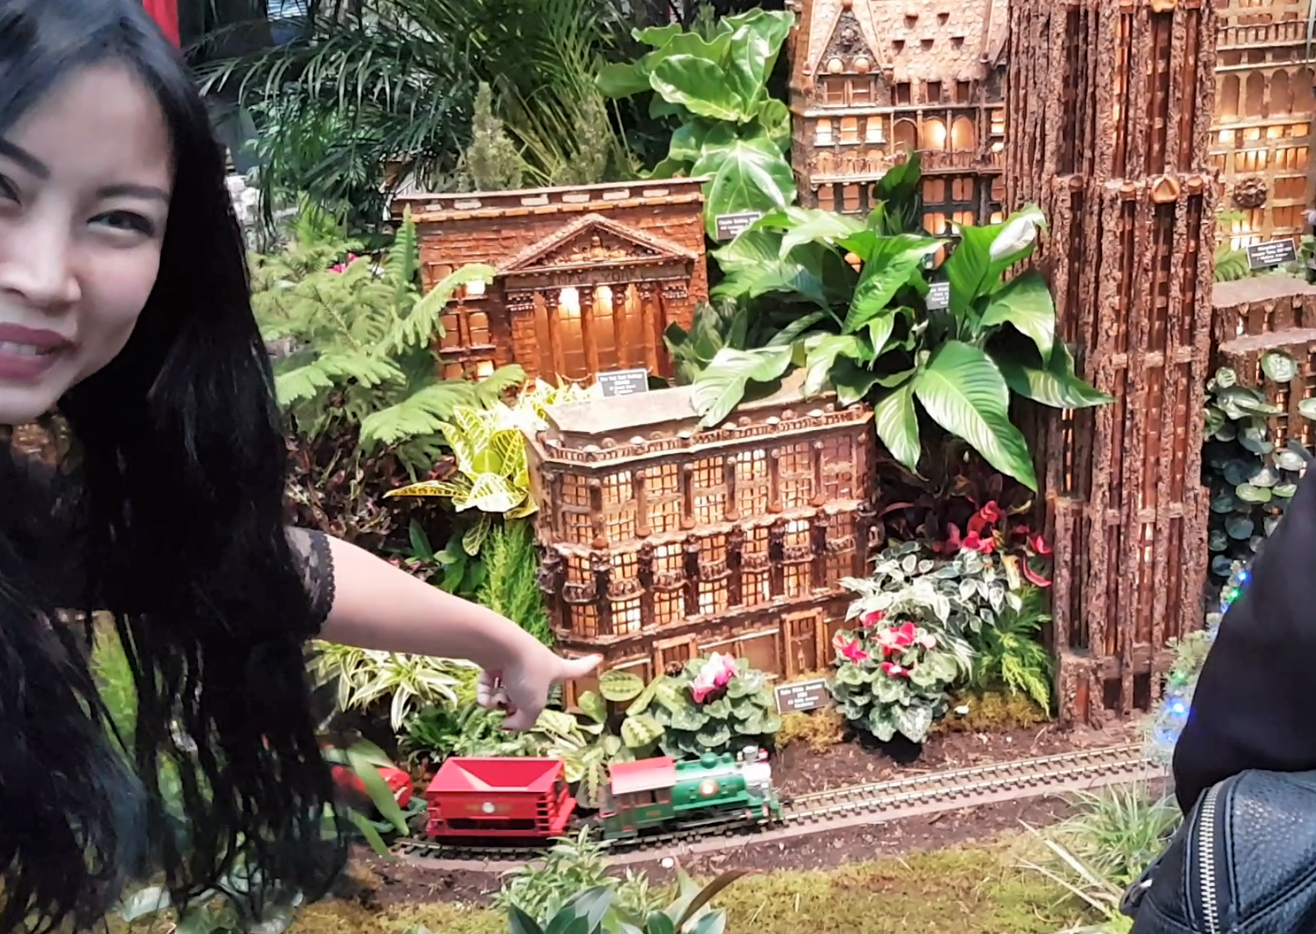 Holiday Train Show at the Botanical Garden